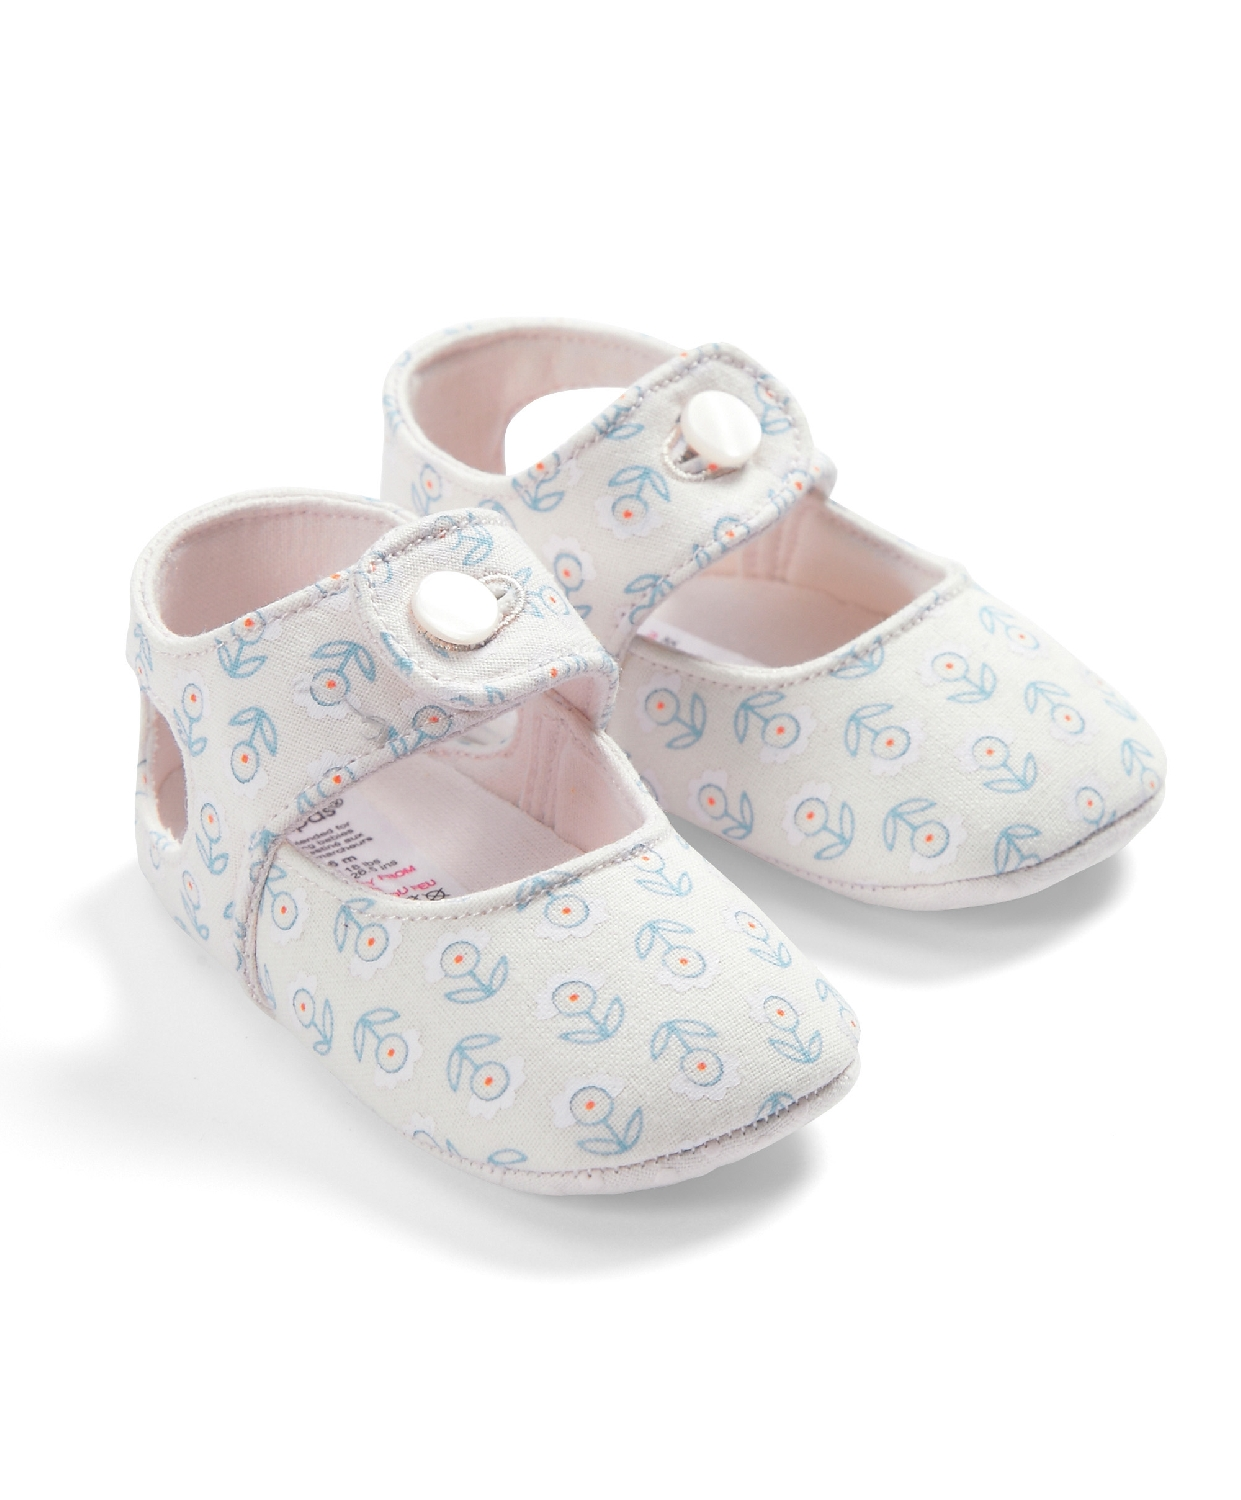 s912h28-flwr-button-shoes--pink-